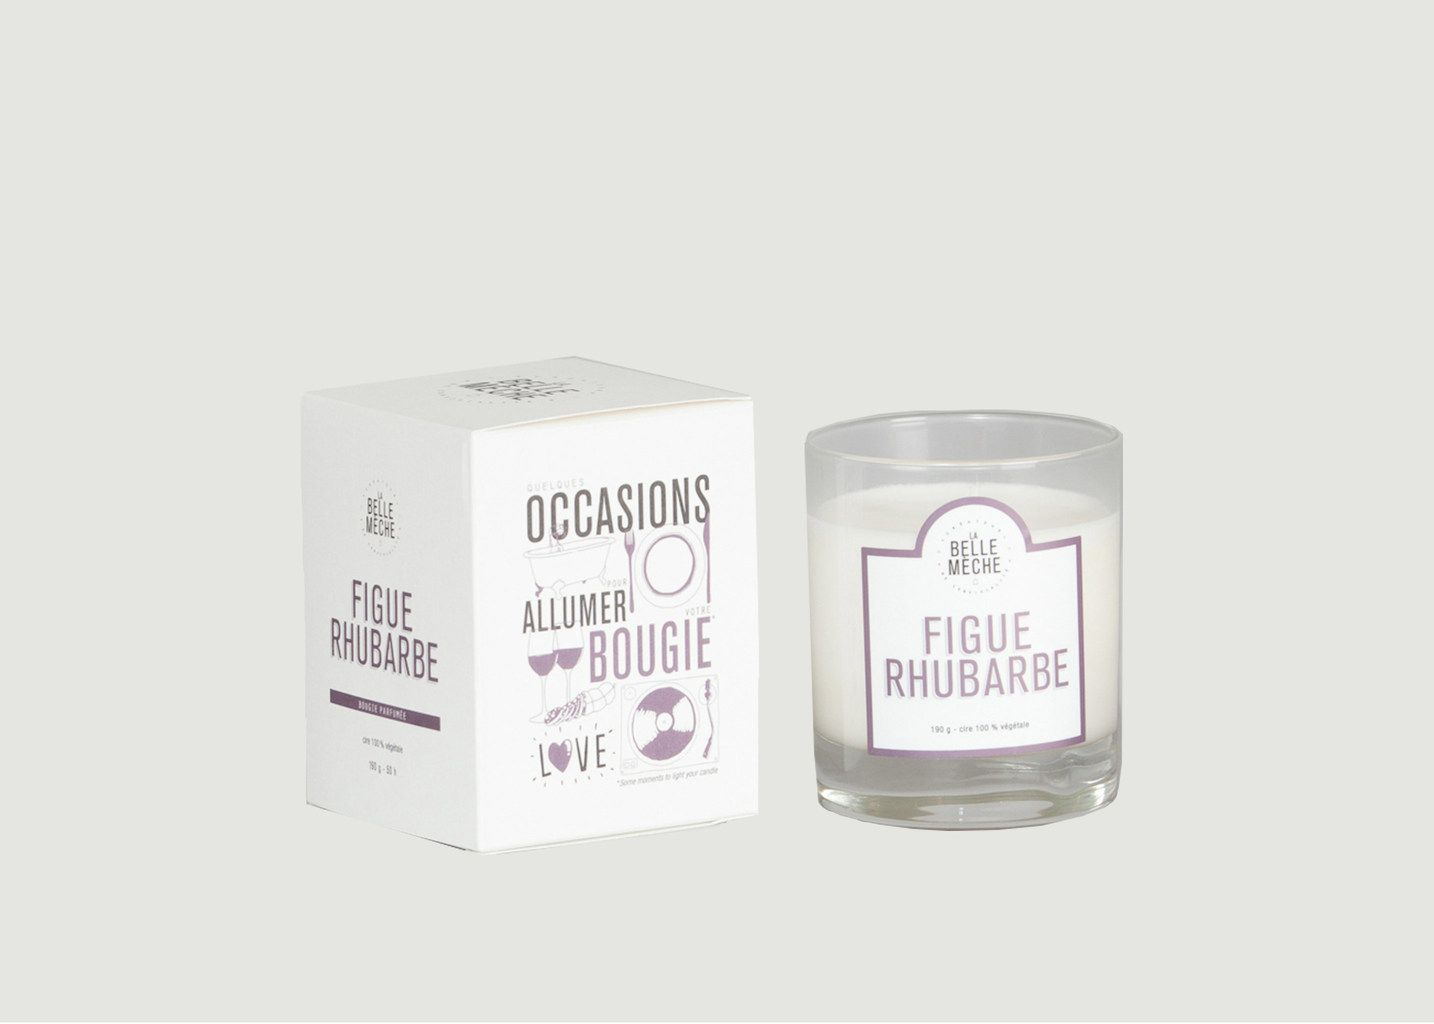 Bougie Figue Rhubarbe - La Belle Mèche